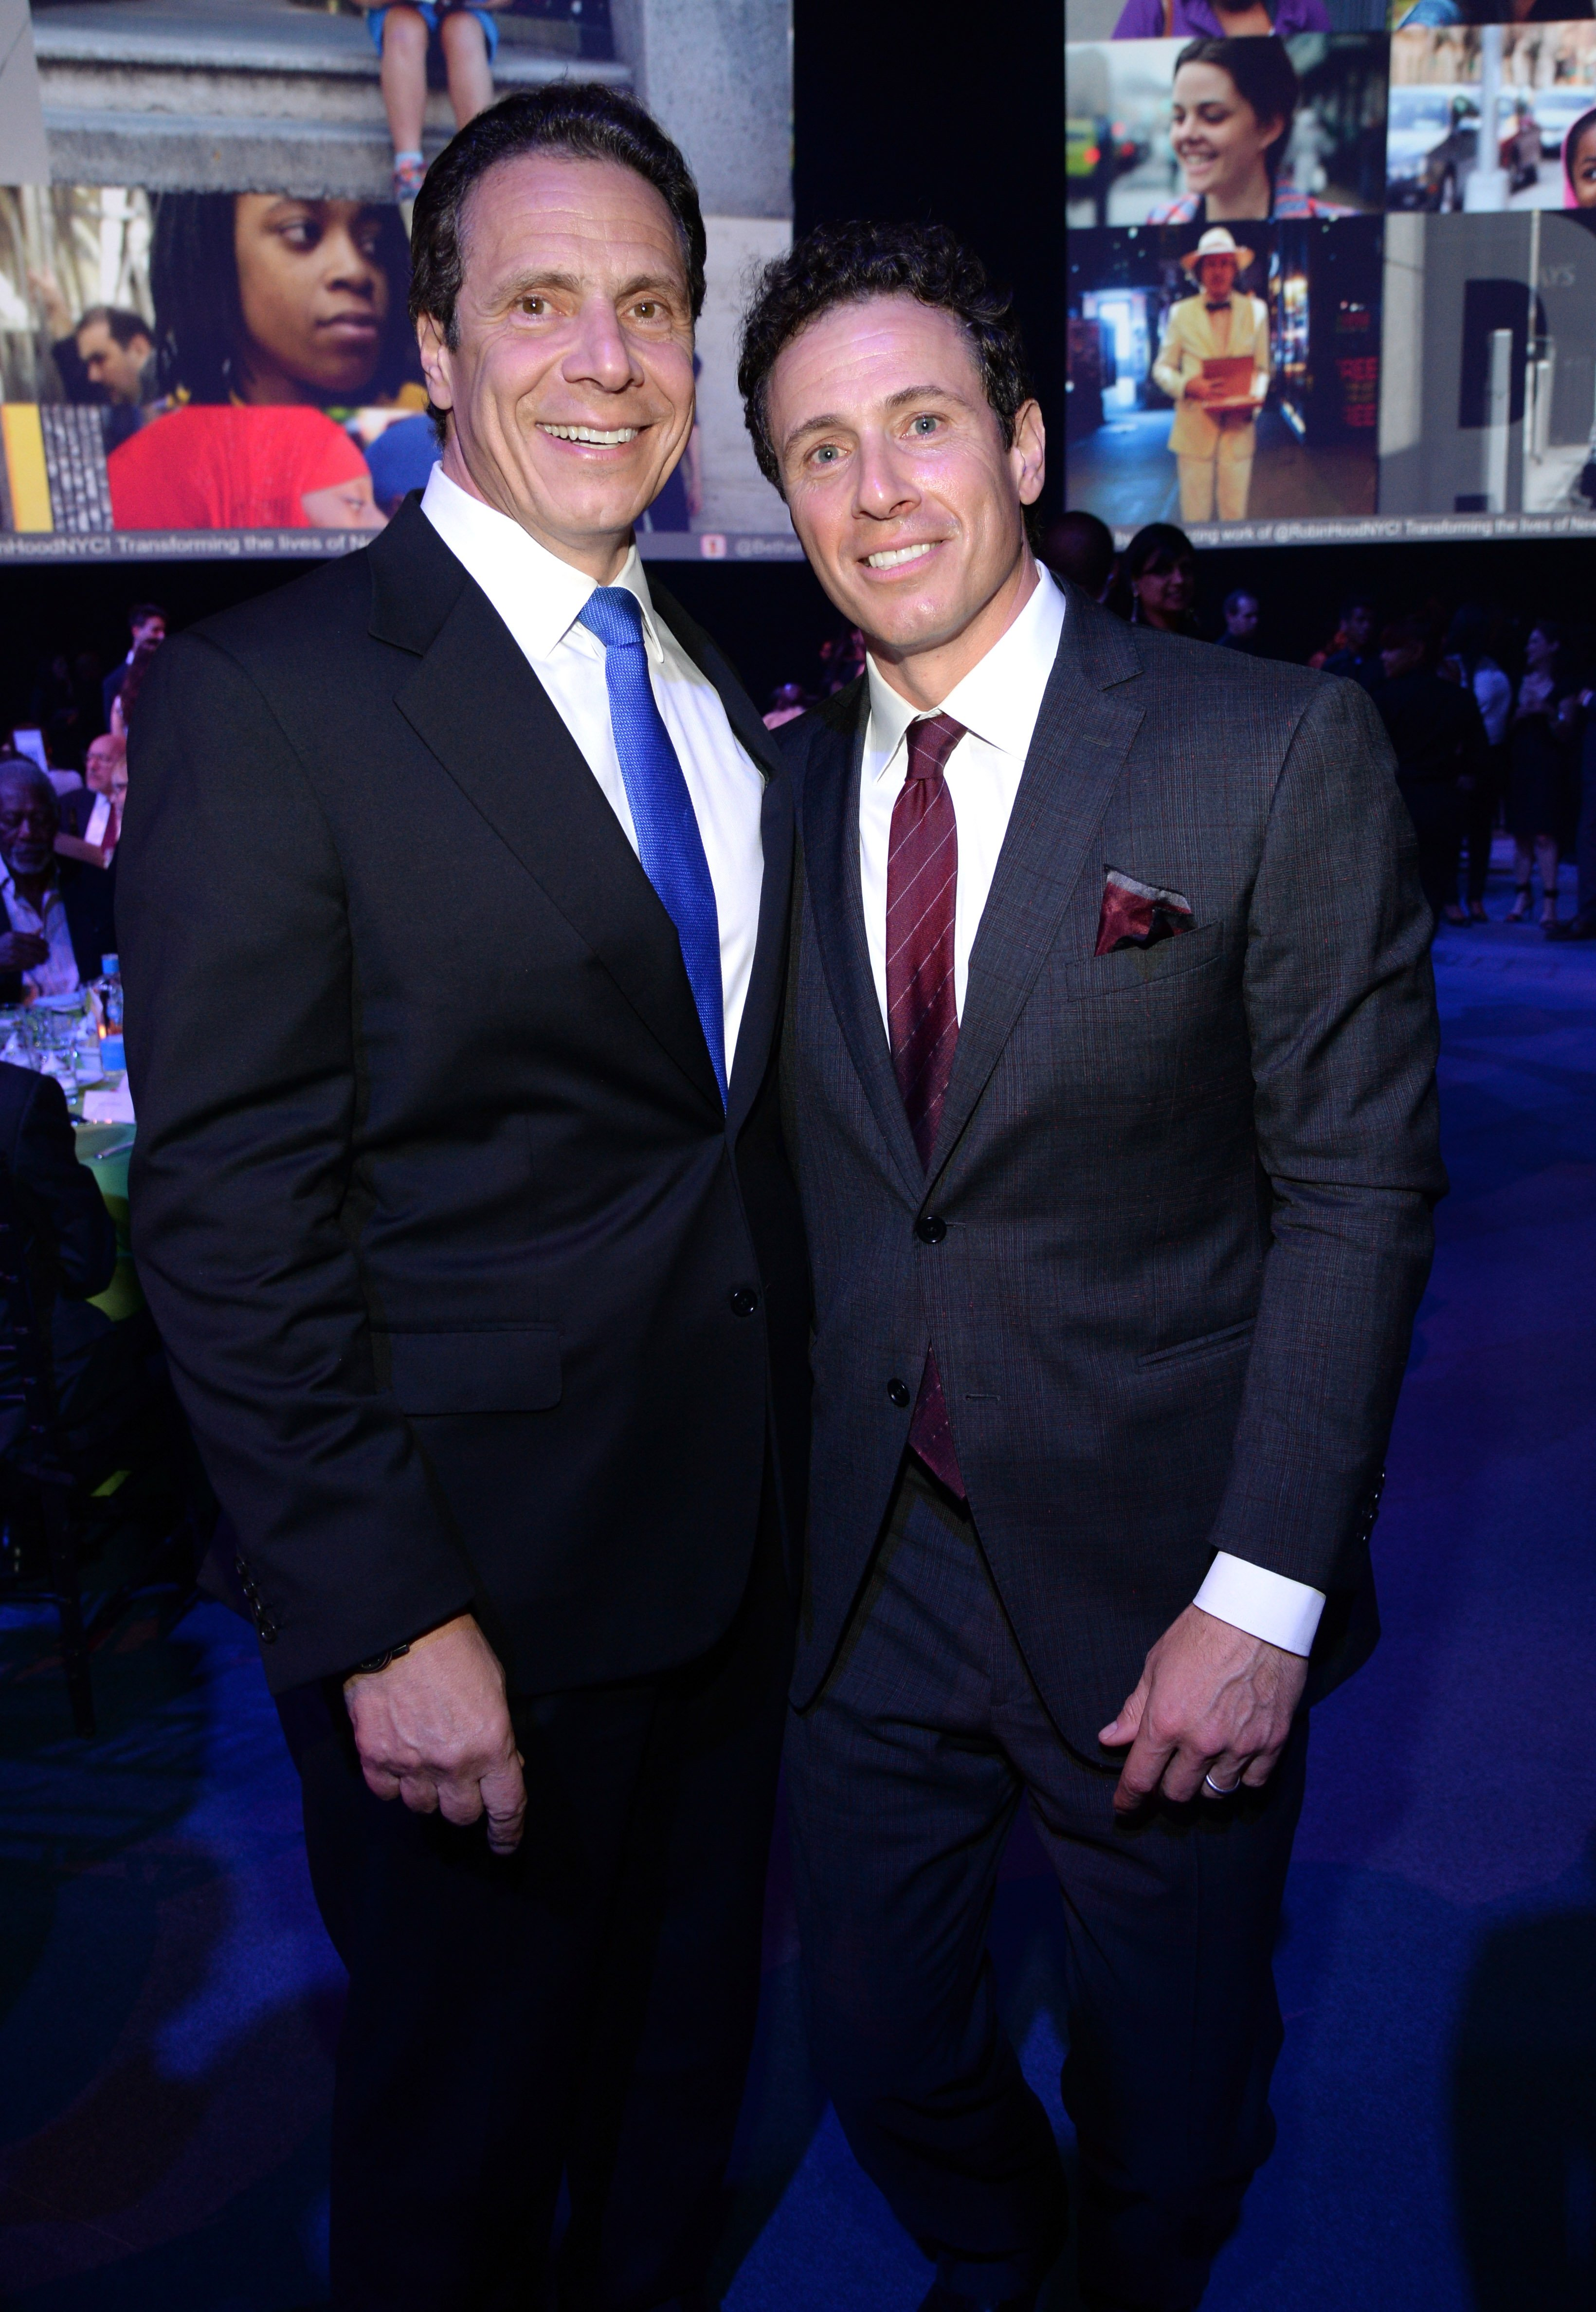 New York Governor Andrew Cuomo and Chris Cuomo attend The Robin Hood Foundation's 2015 Benefit on May 12, 2015, in New York City. | Source: Getty Images.